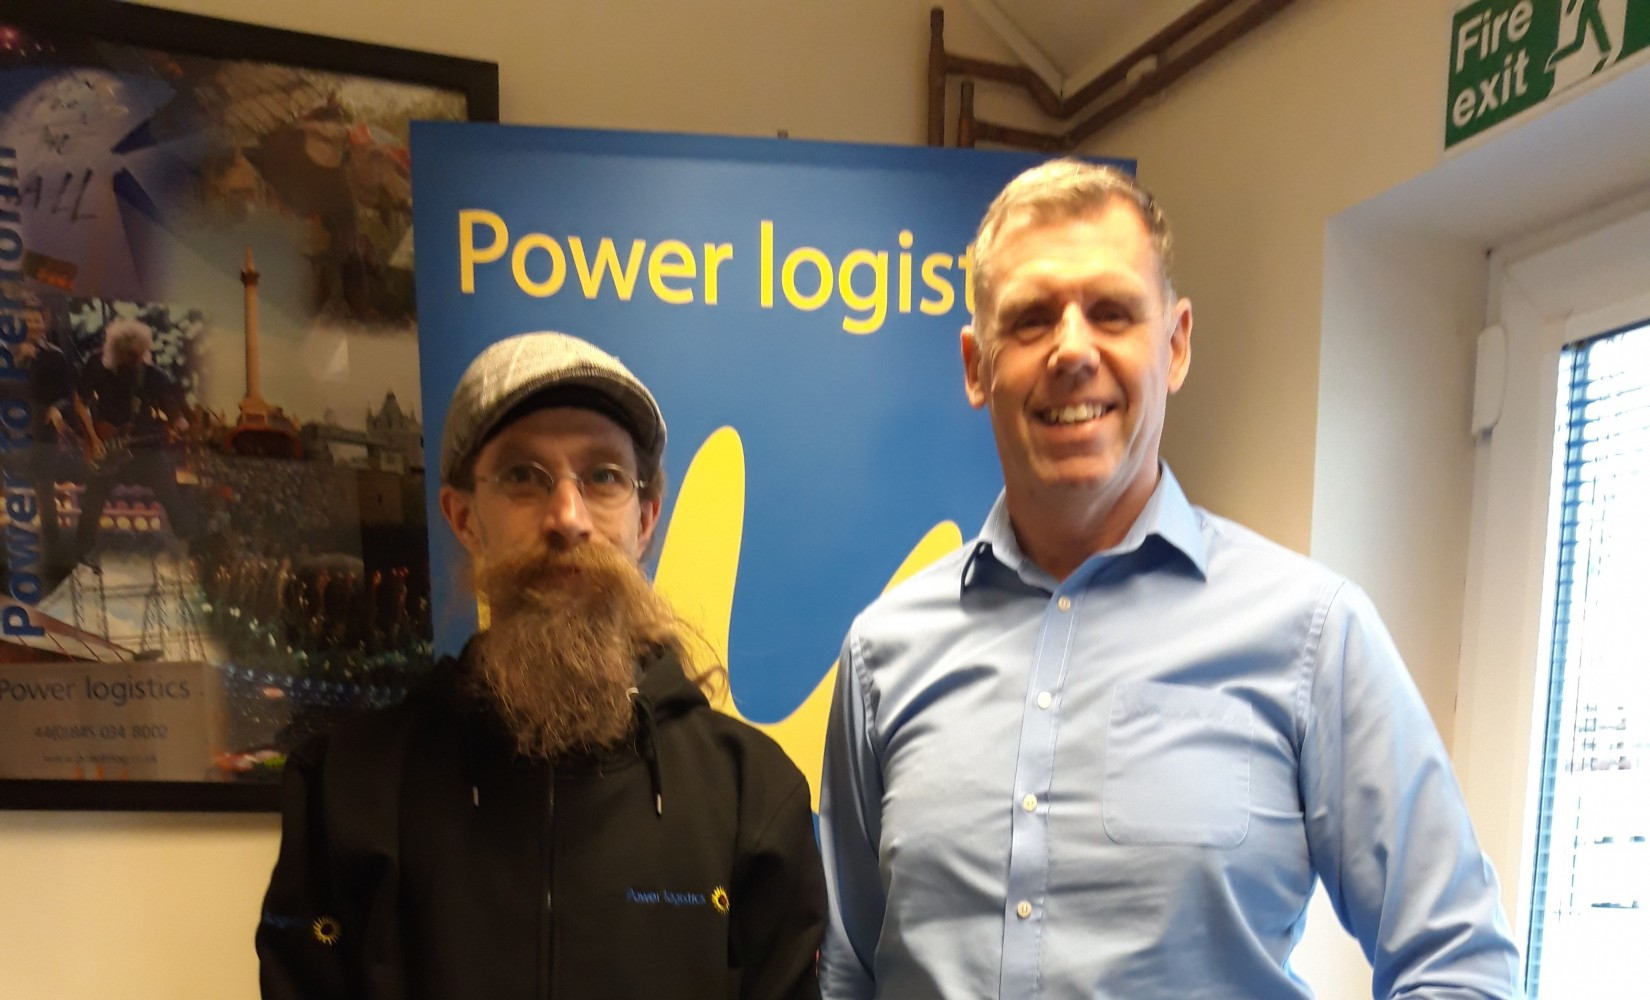 Power Logistics' managing director, Mike Whitehouse welcomes support engineer Dafydd Hirst to the research and development team